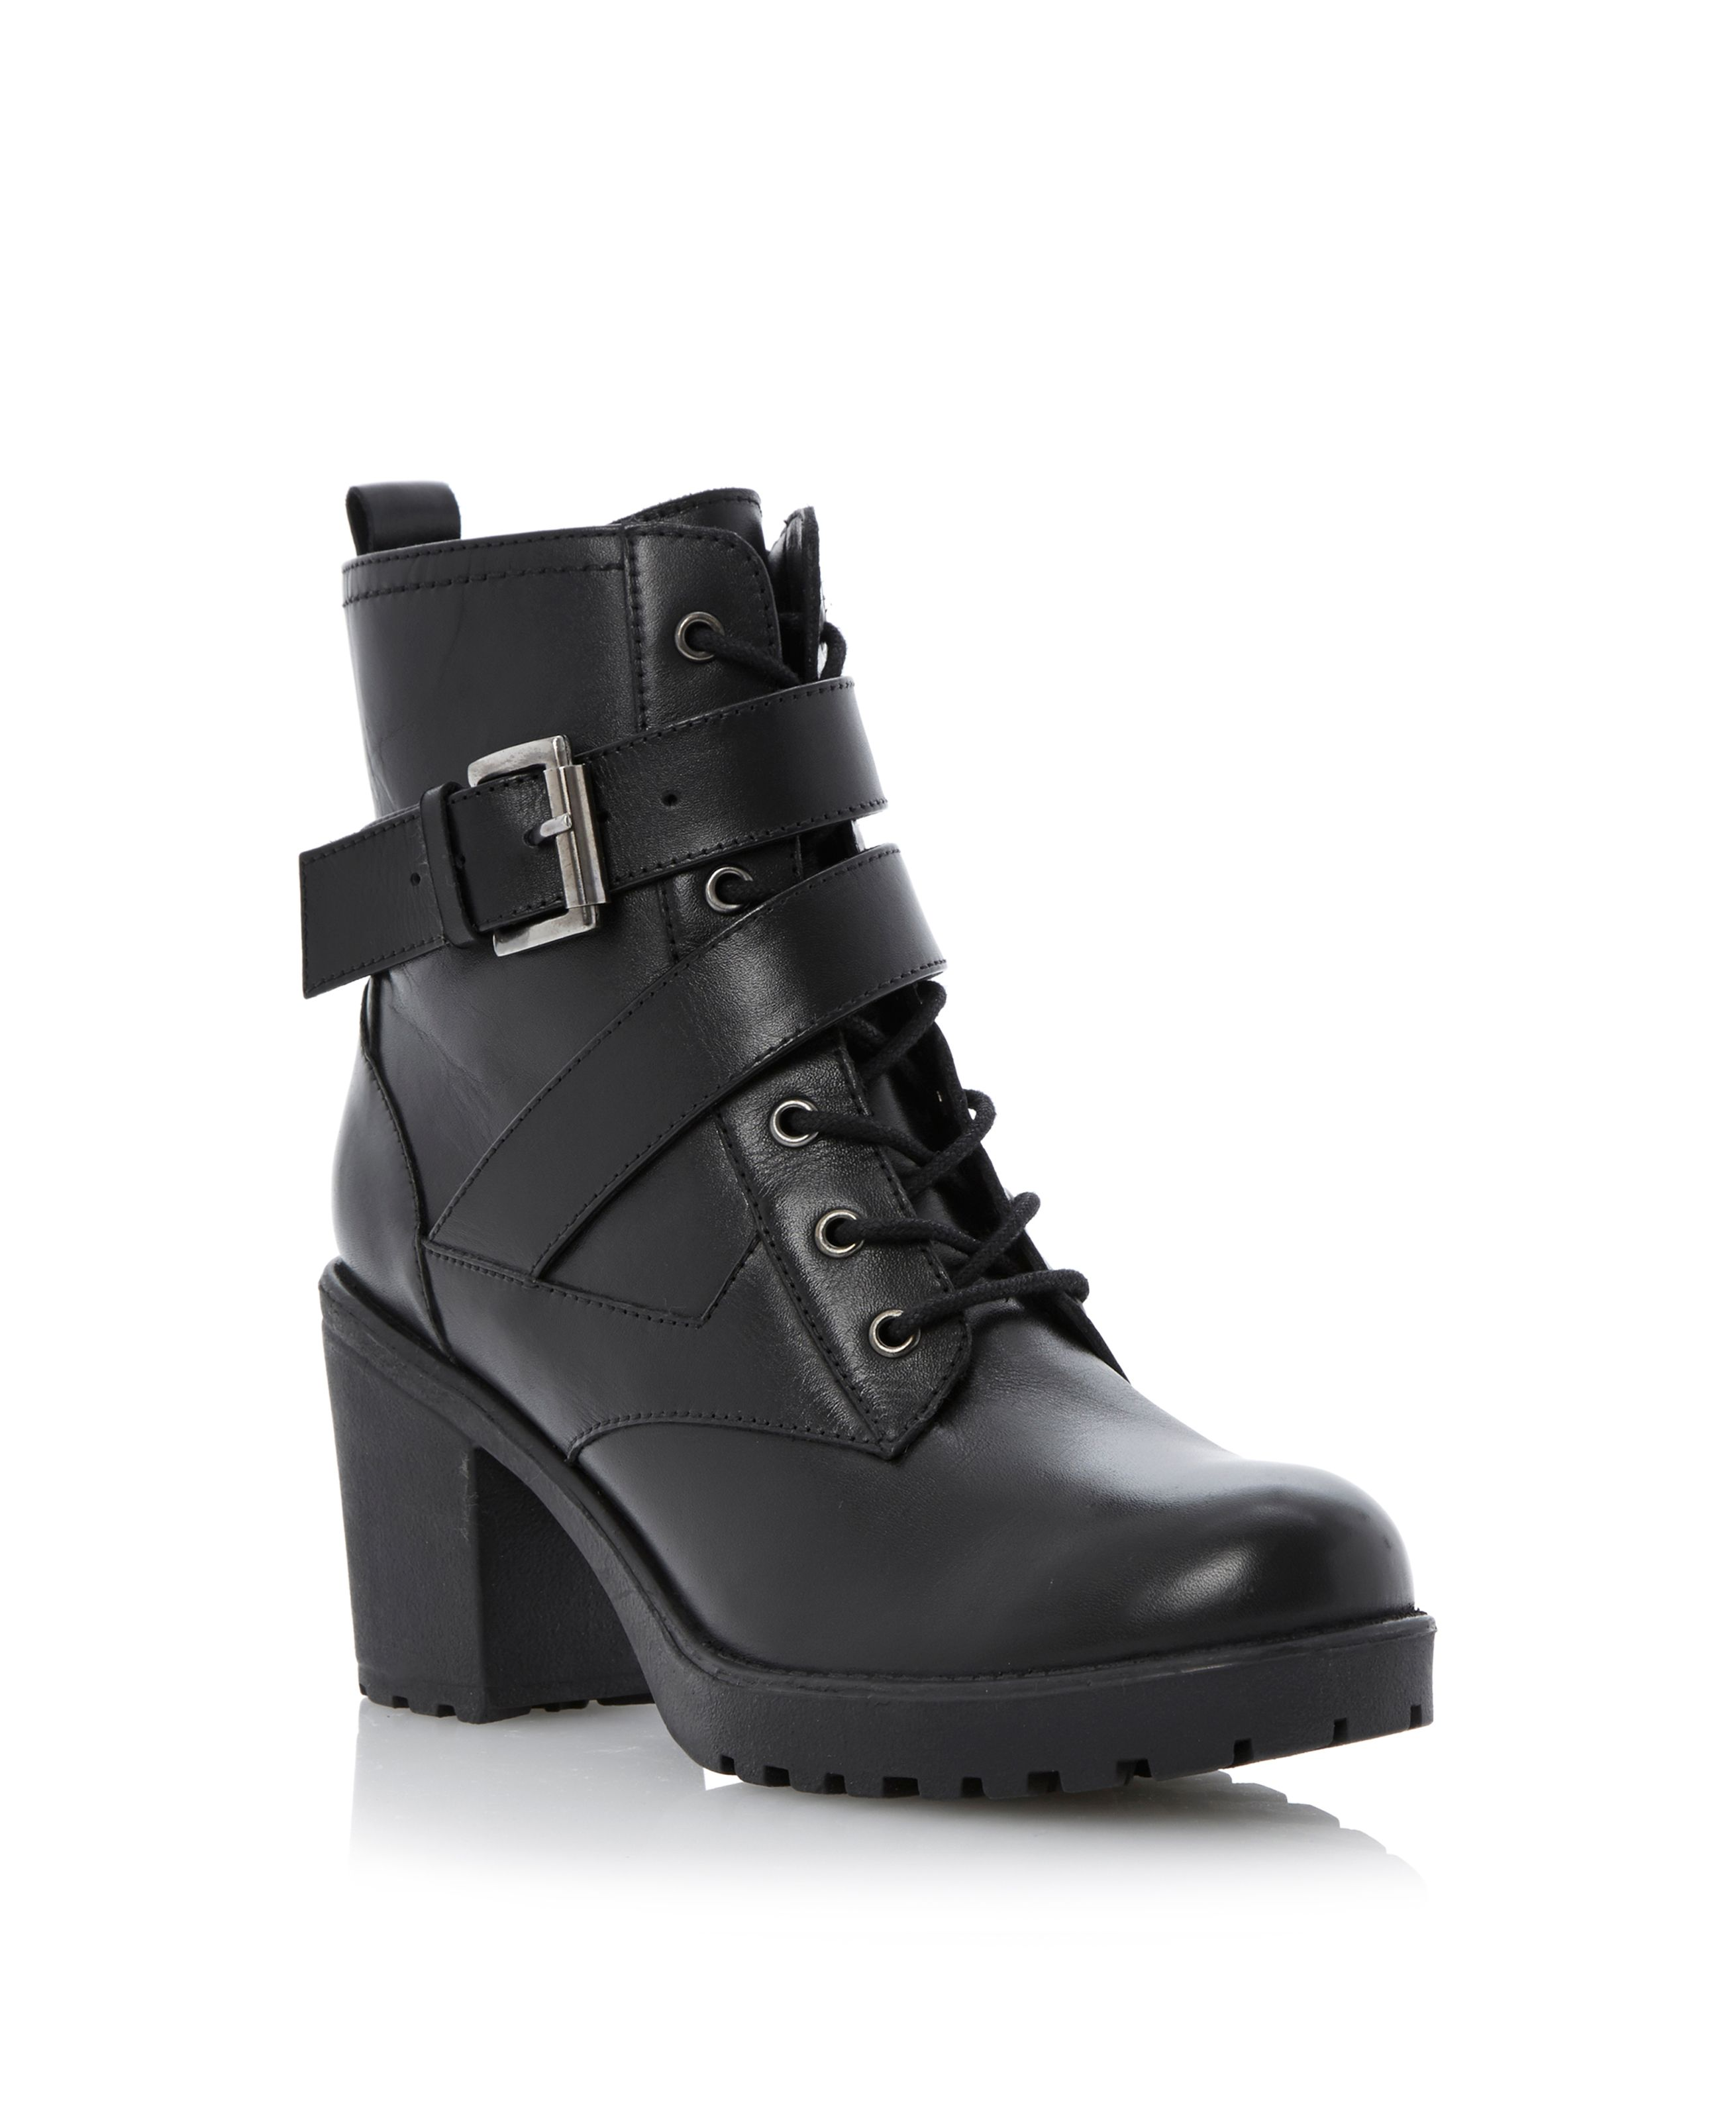 Preeesha zip leather block heel round toe boots